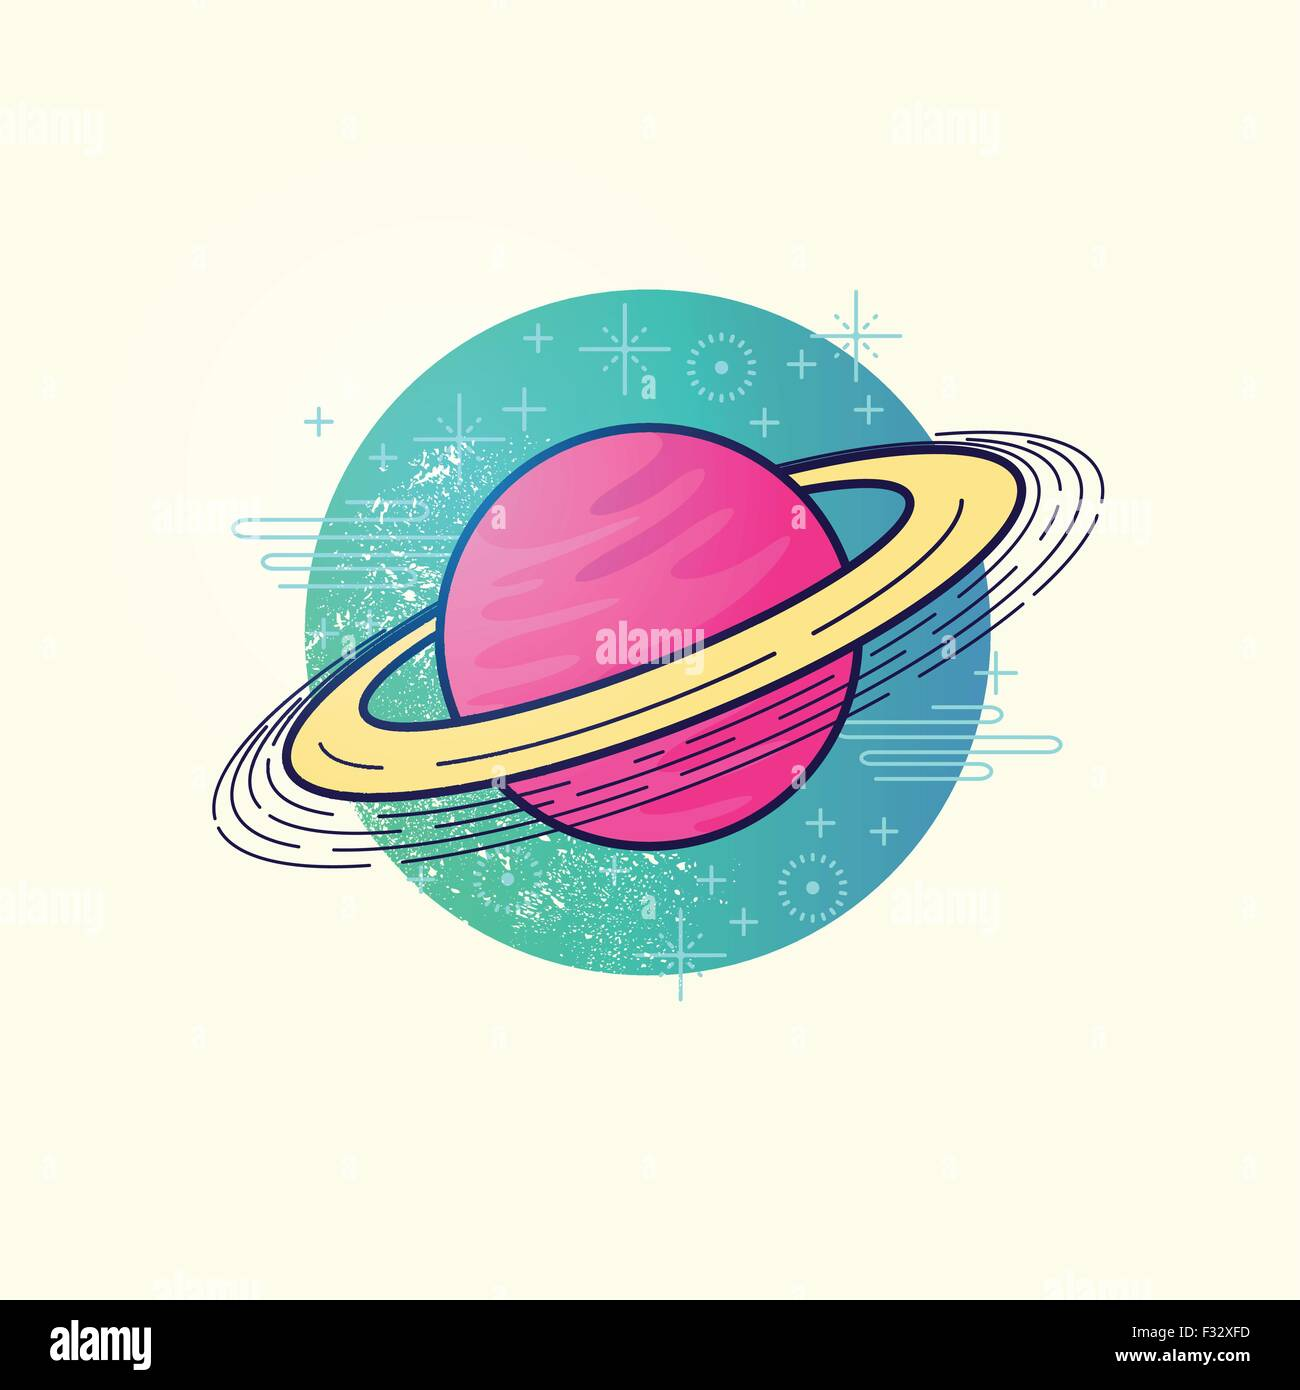 Space Planet Vector. A large gas planet with a ring system. vector illustration - Stock Image